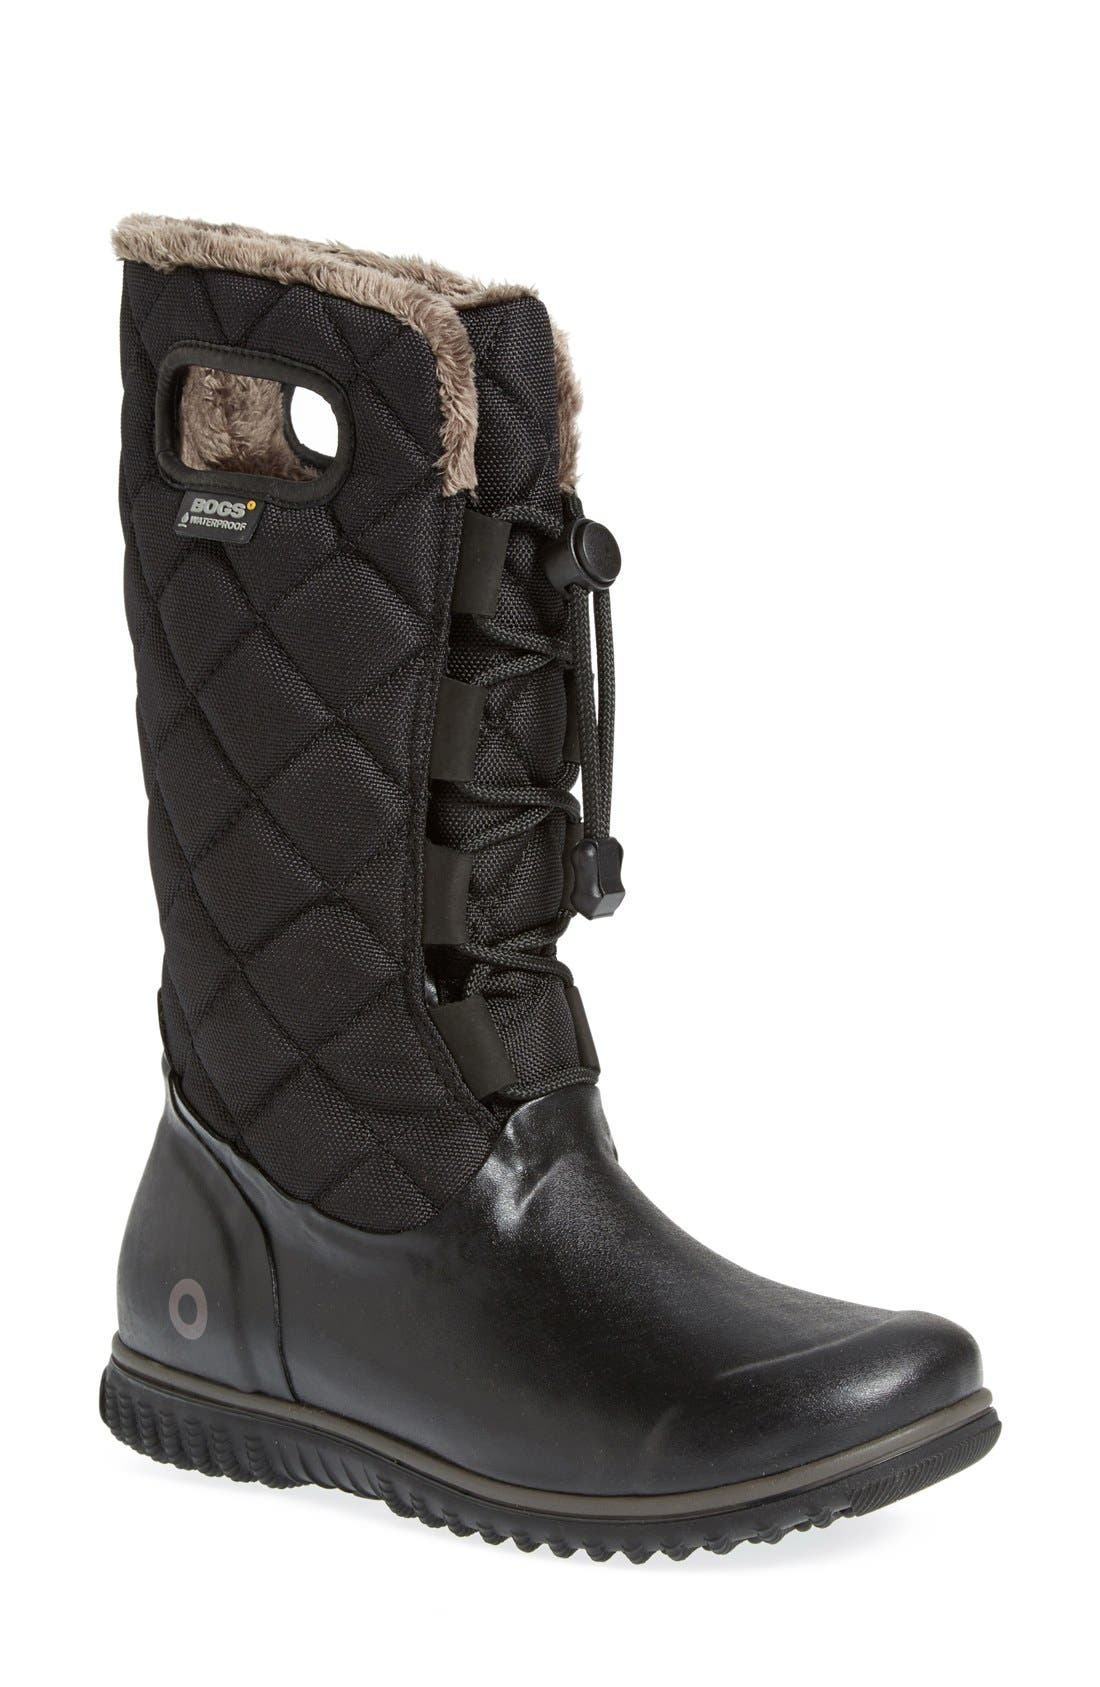 Alternate Image 1 Selected - Bogs 'June' Lace High Waterproof Quilted Boot (Women)